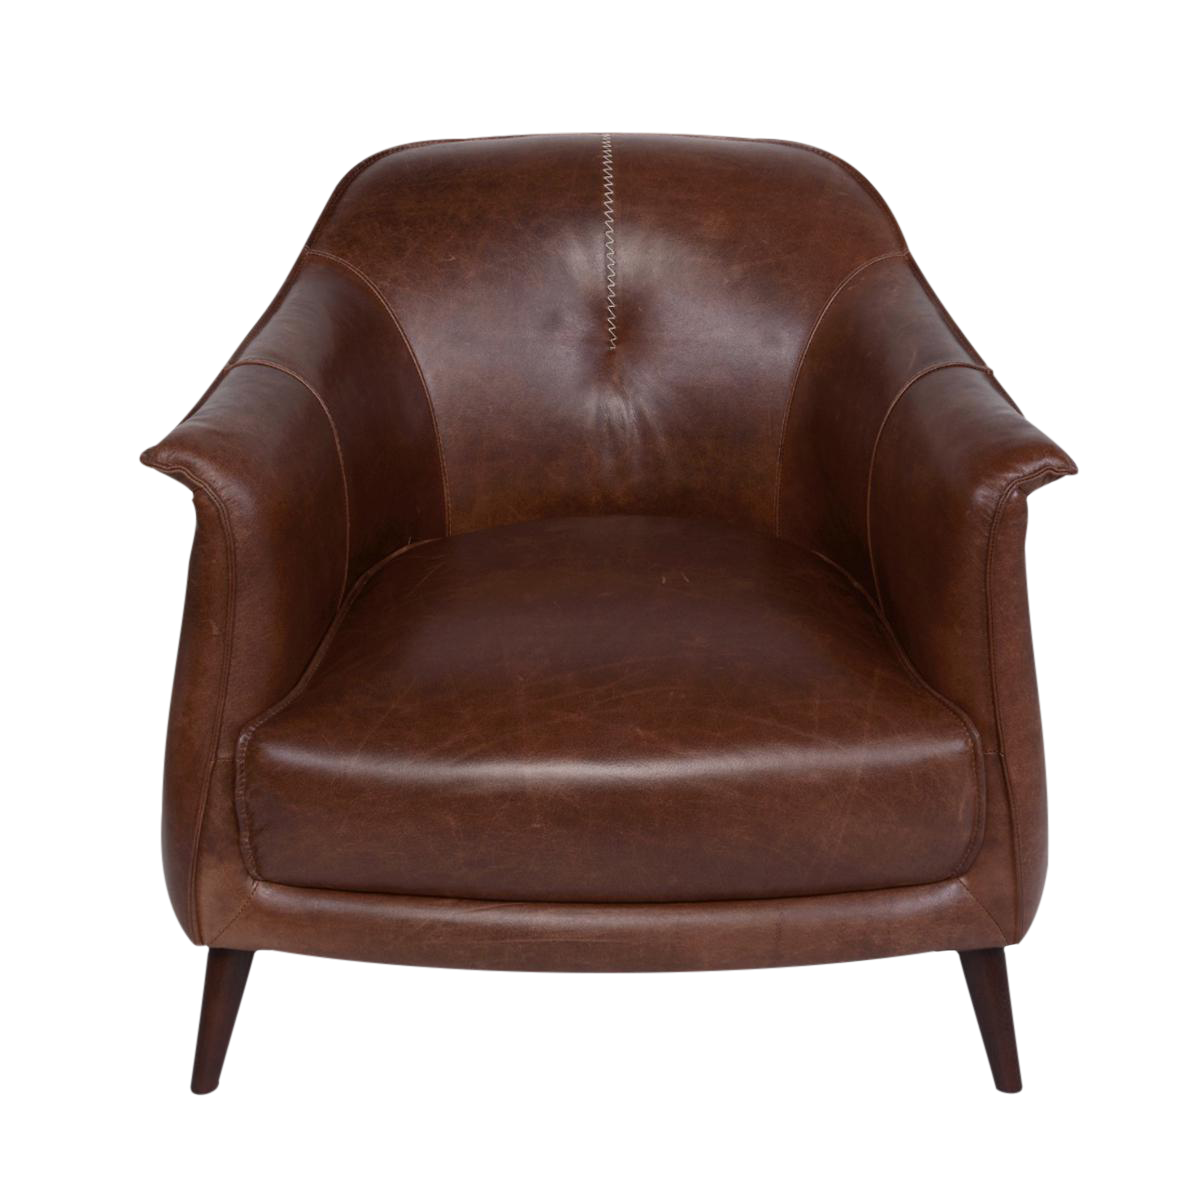 Chestnut Leather Gum Drop Chair Chairish